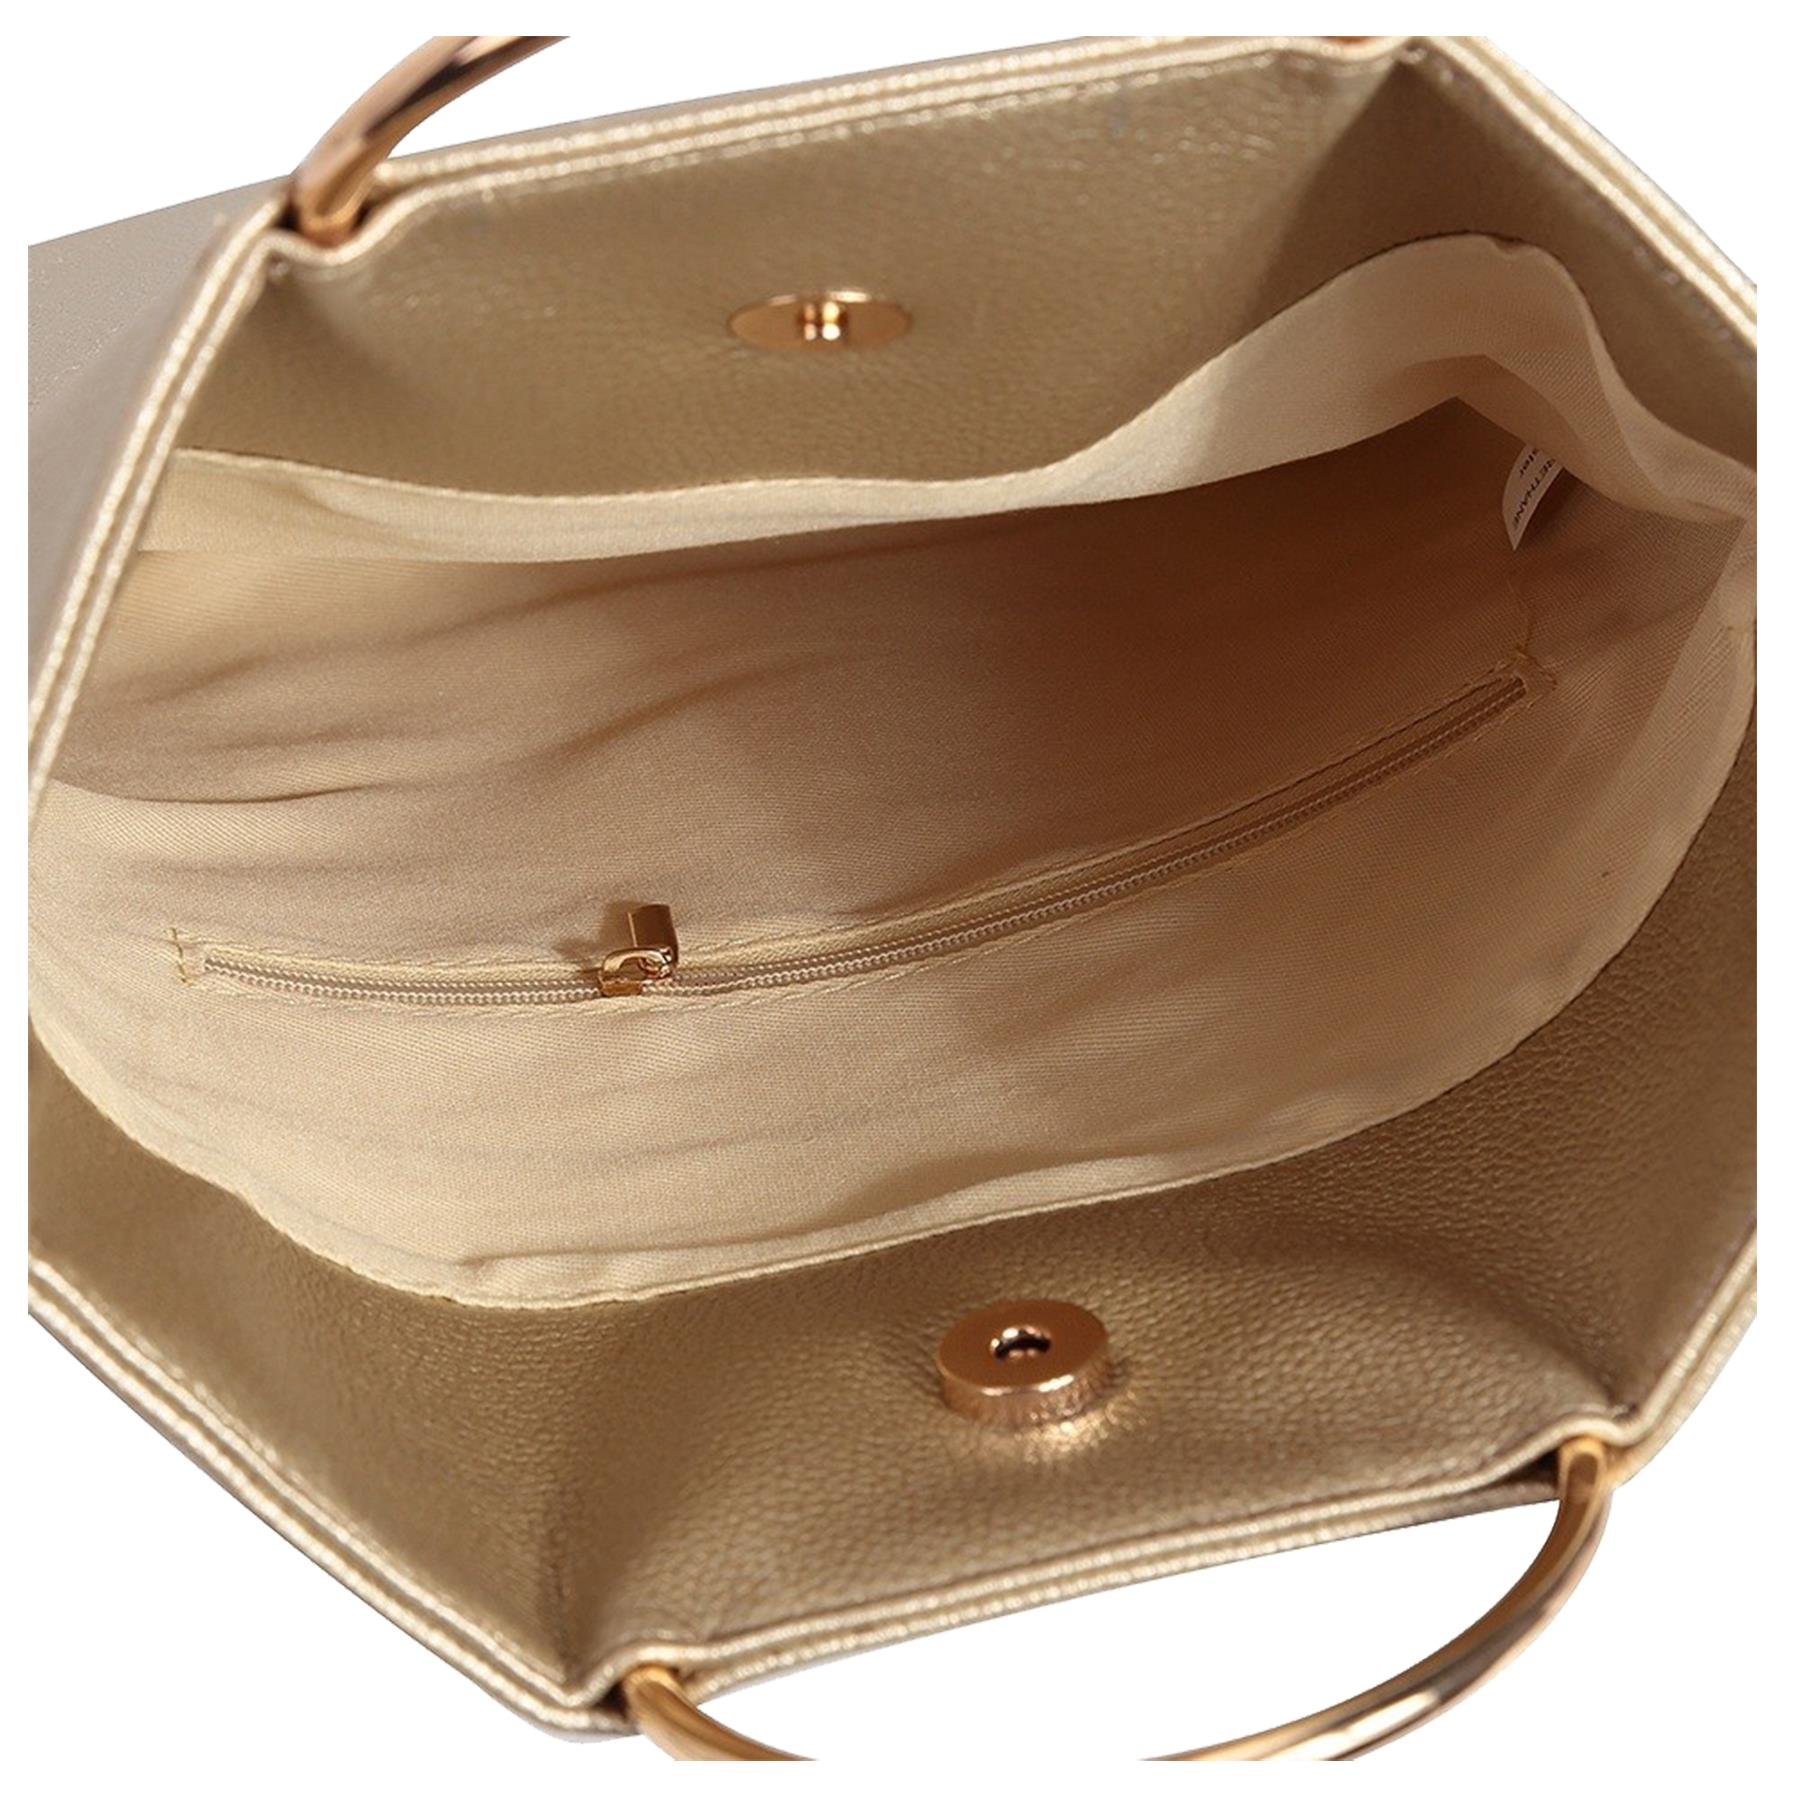 New-Women-s-Metallic-Ring-Top-Handles-Faux-Leather-Evening-Clutch-Bag thumbnail 10